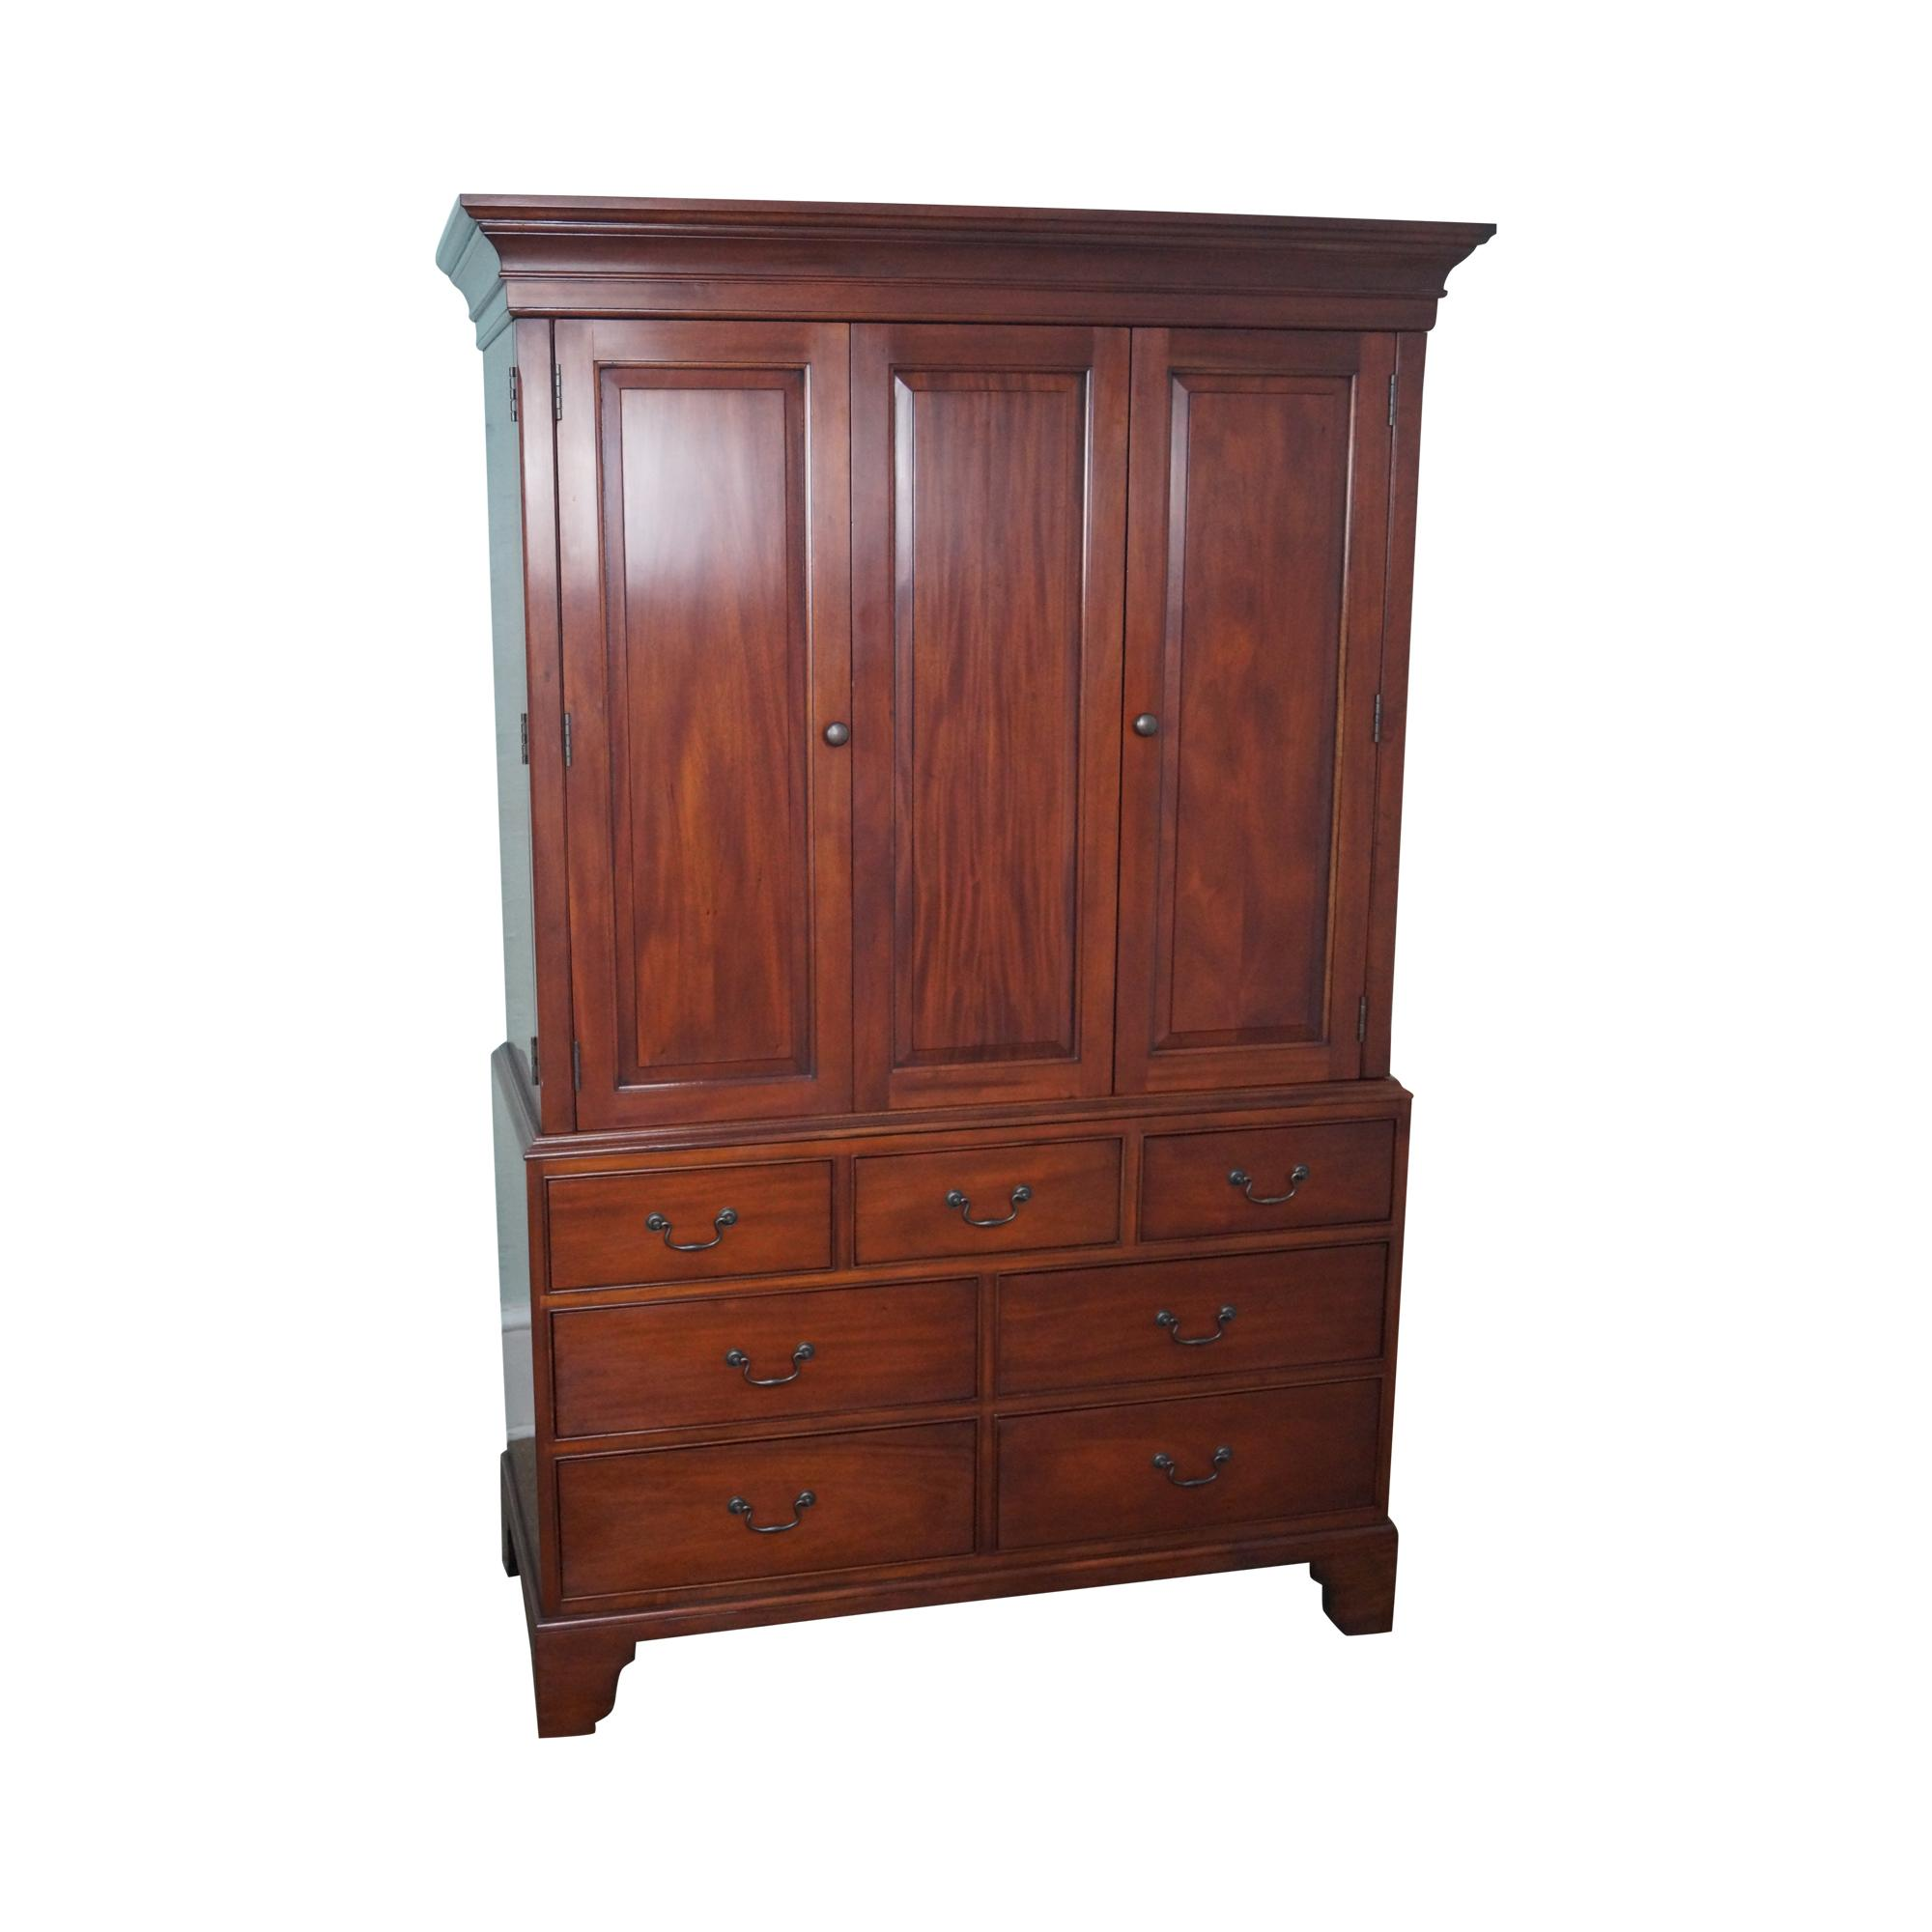 Large mahogany chippendale style tv cabinet armoire chairish for Armoire penderie style japonais